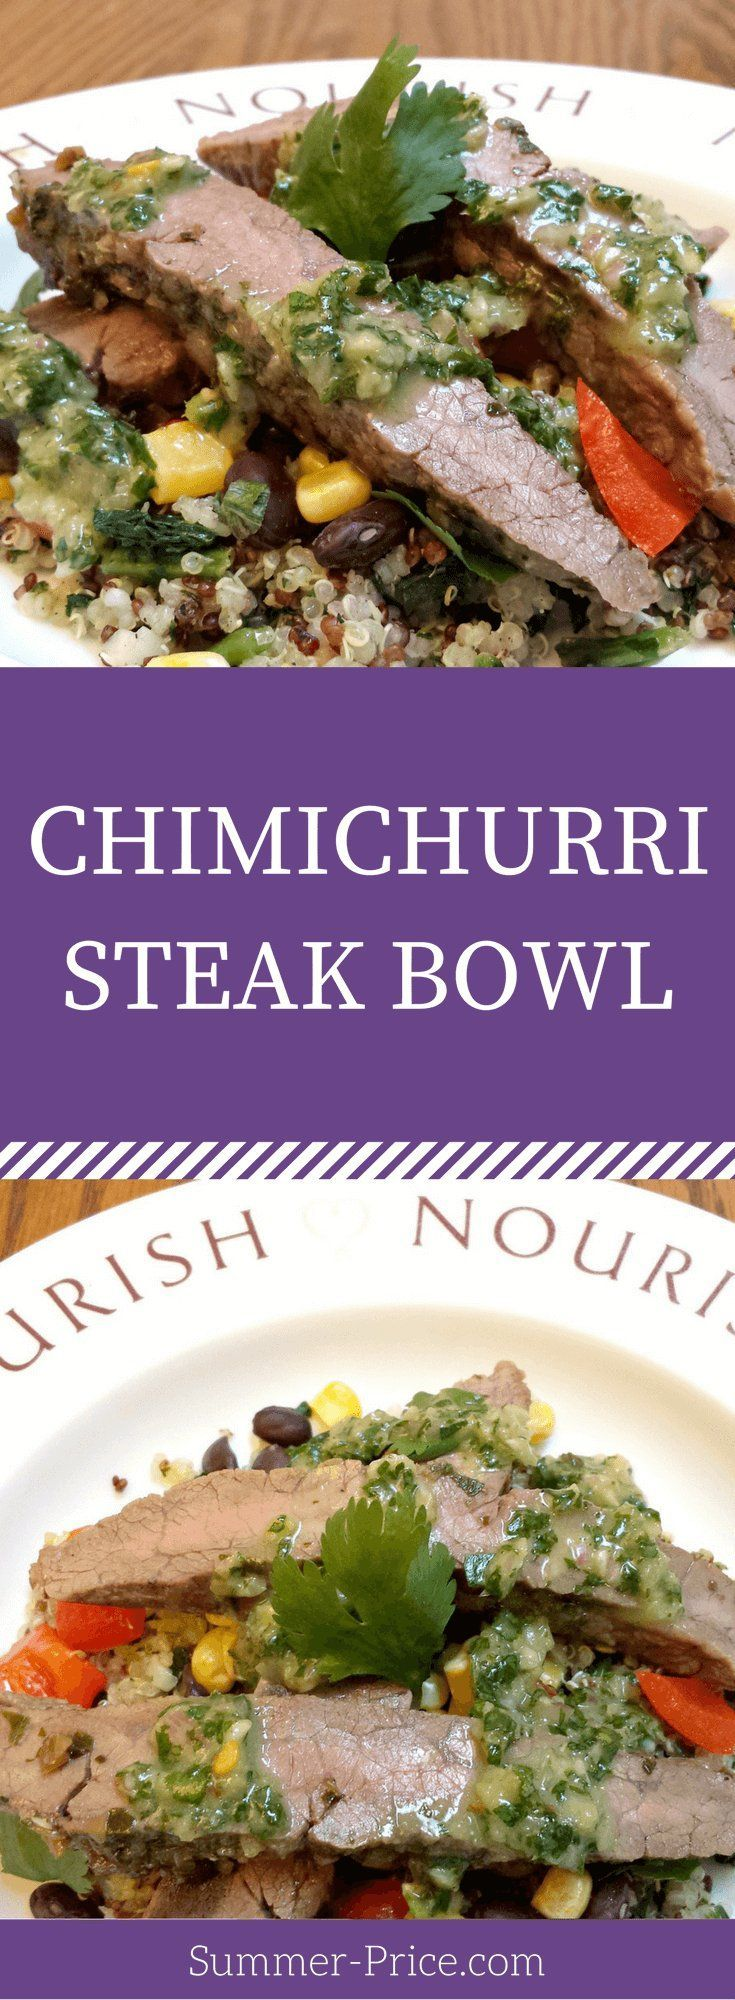 This Chimichurri Steak Quinoa Bowl is a simple, easy recipe for leftover meat. It doesn't have to be a flat iron or skirt steak. Any beef, chicken or even veggies would be great for dinners or any meal. The chimichurri sauce or marinade is gluten free, full of fresh herbs like cilantro and parsley & is also a great salad dressing. Cooking healthy for families doesn't have to be complicated. via @summerprice1